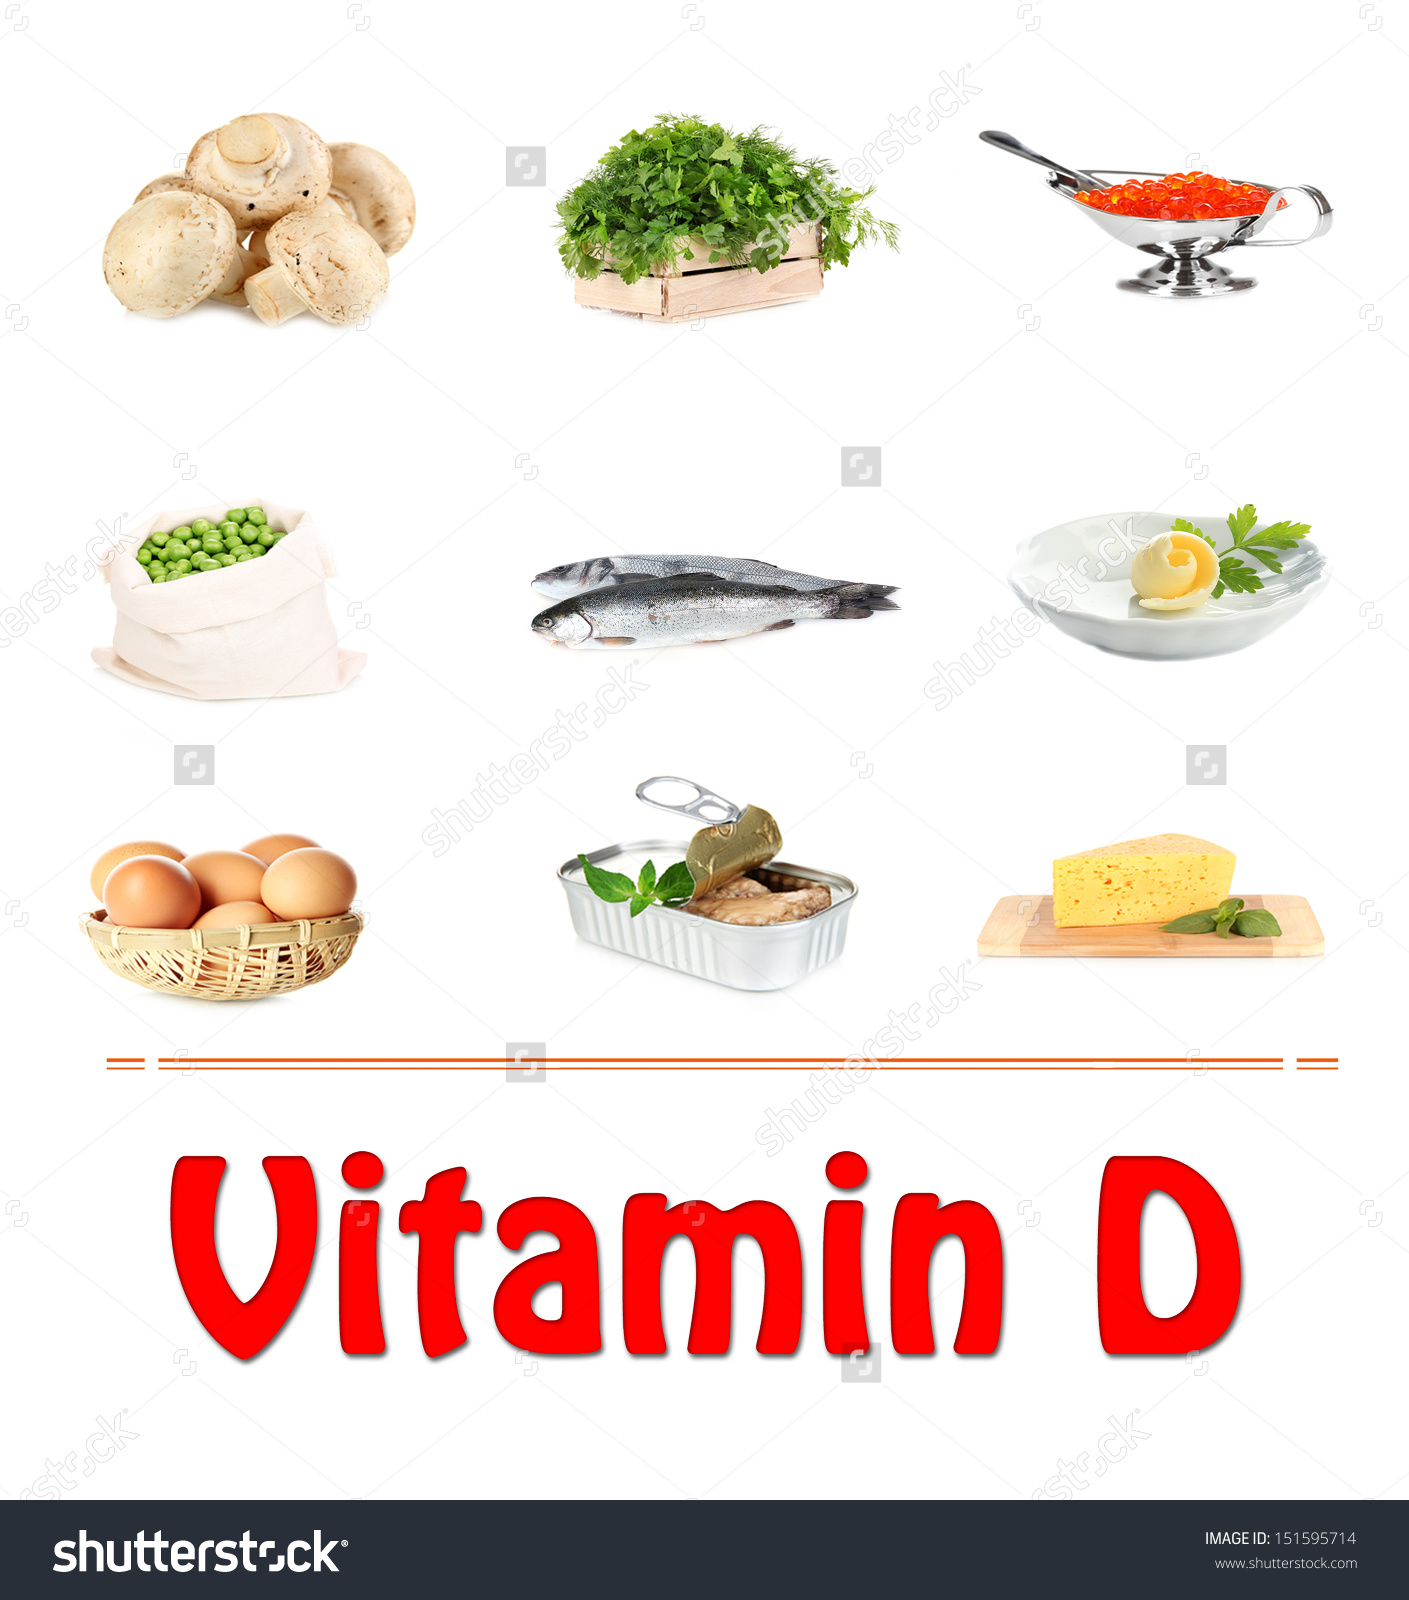 Vitamin d veggies